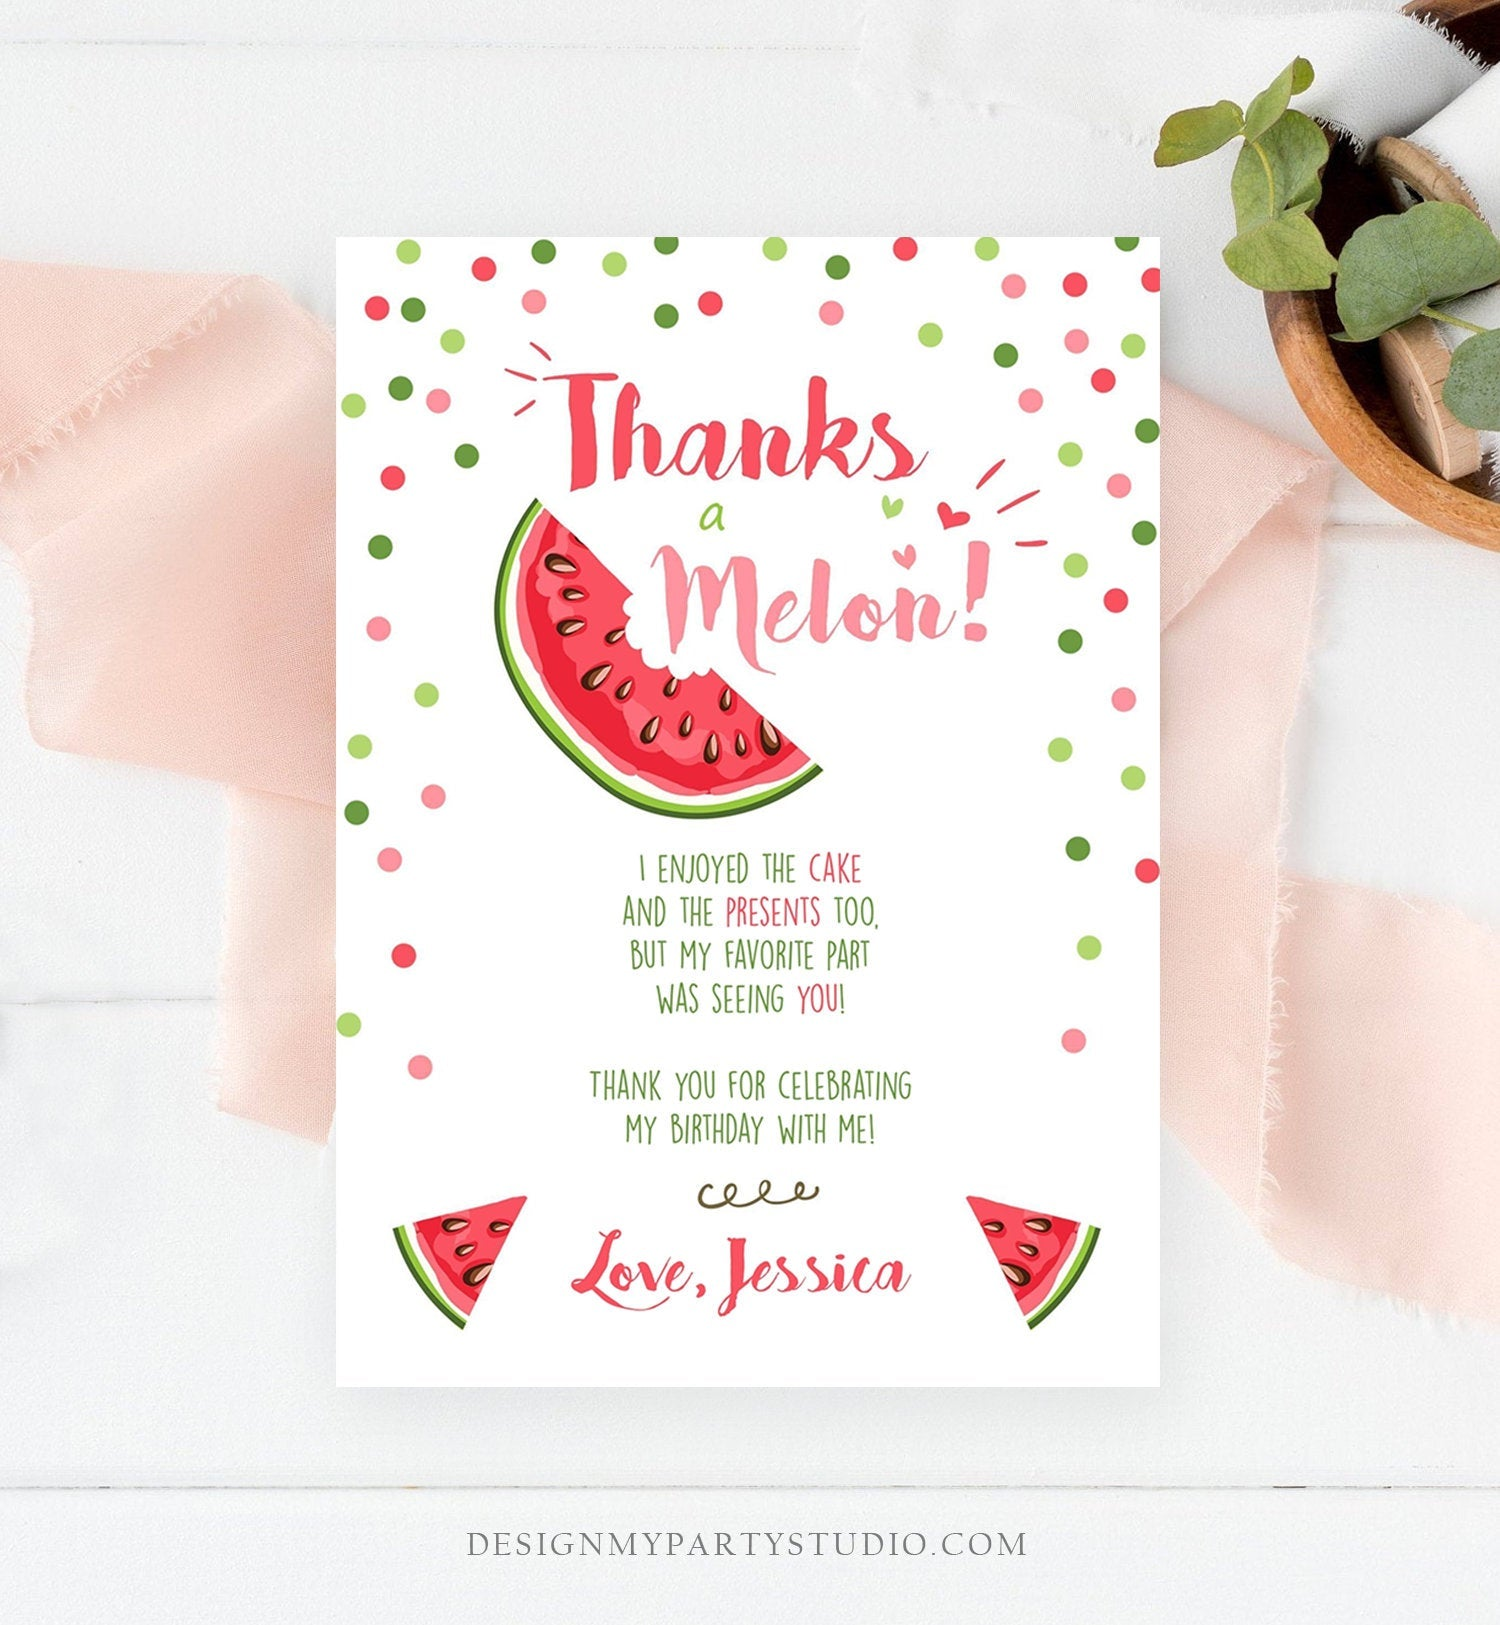 Editable Thanks a Melon Thank You Card Watermelon First Birthday Party Girl Pink Red Melon Summer Fruit Photo Corjl Template Printable 0120